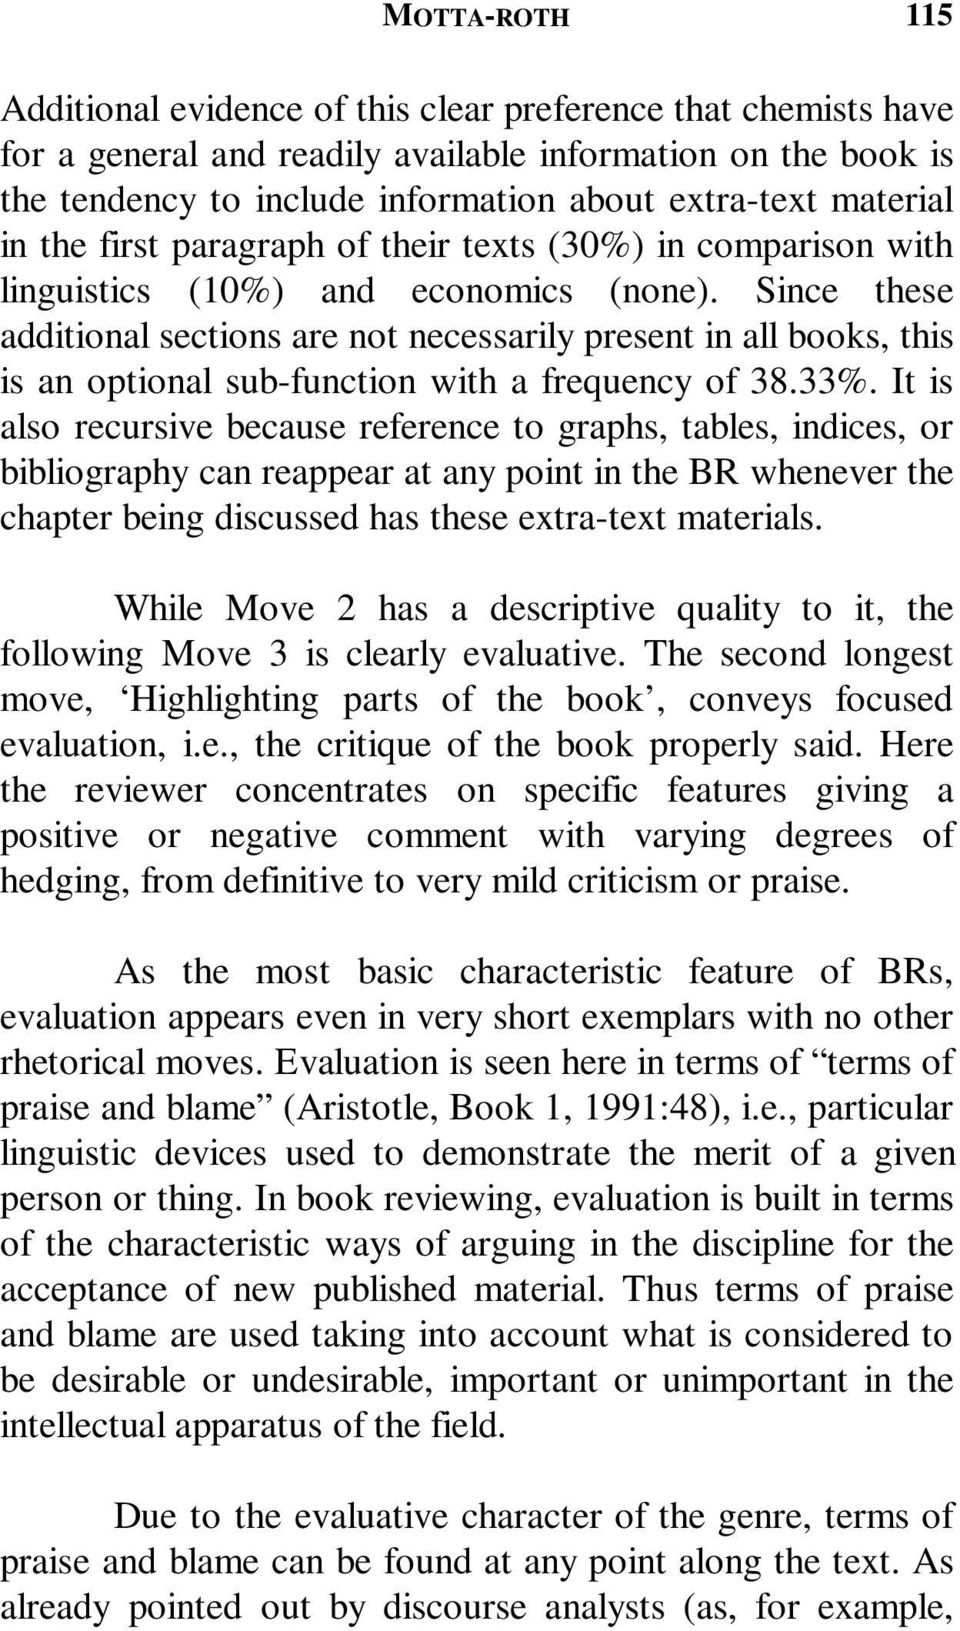 Since these additional sections are not necessarily present in all books, this is an optional sub-function with a frequency of 38.33%.